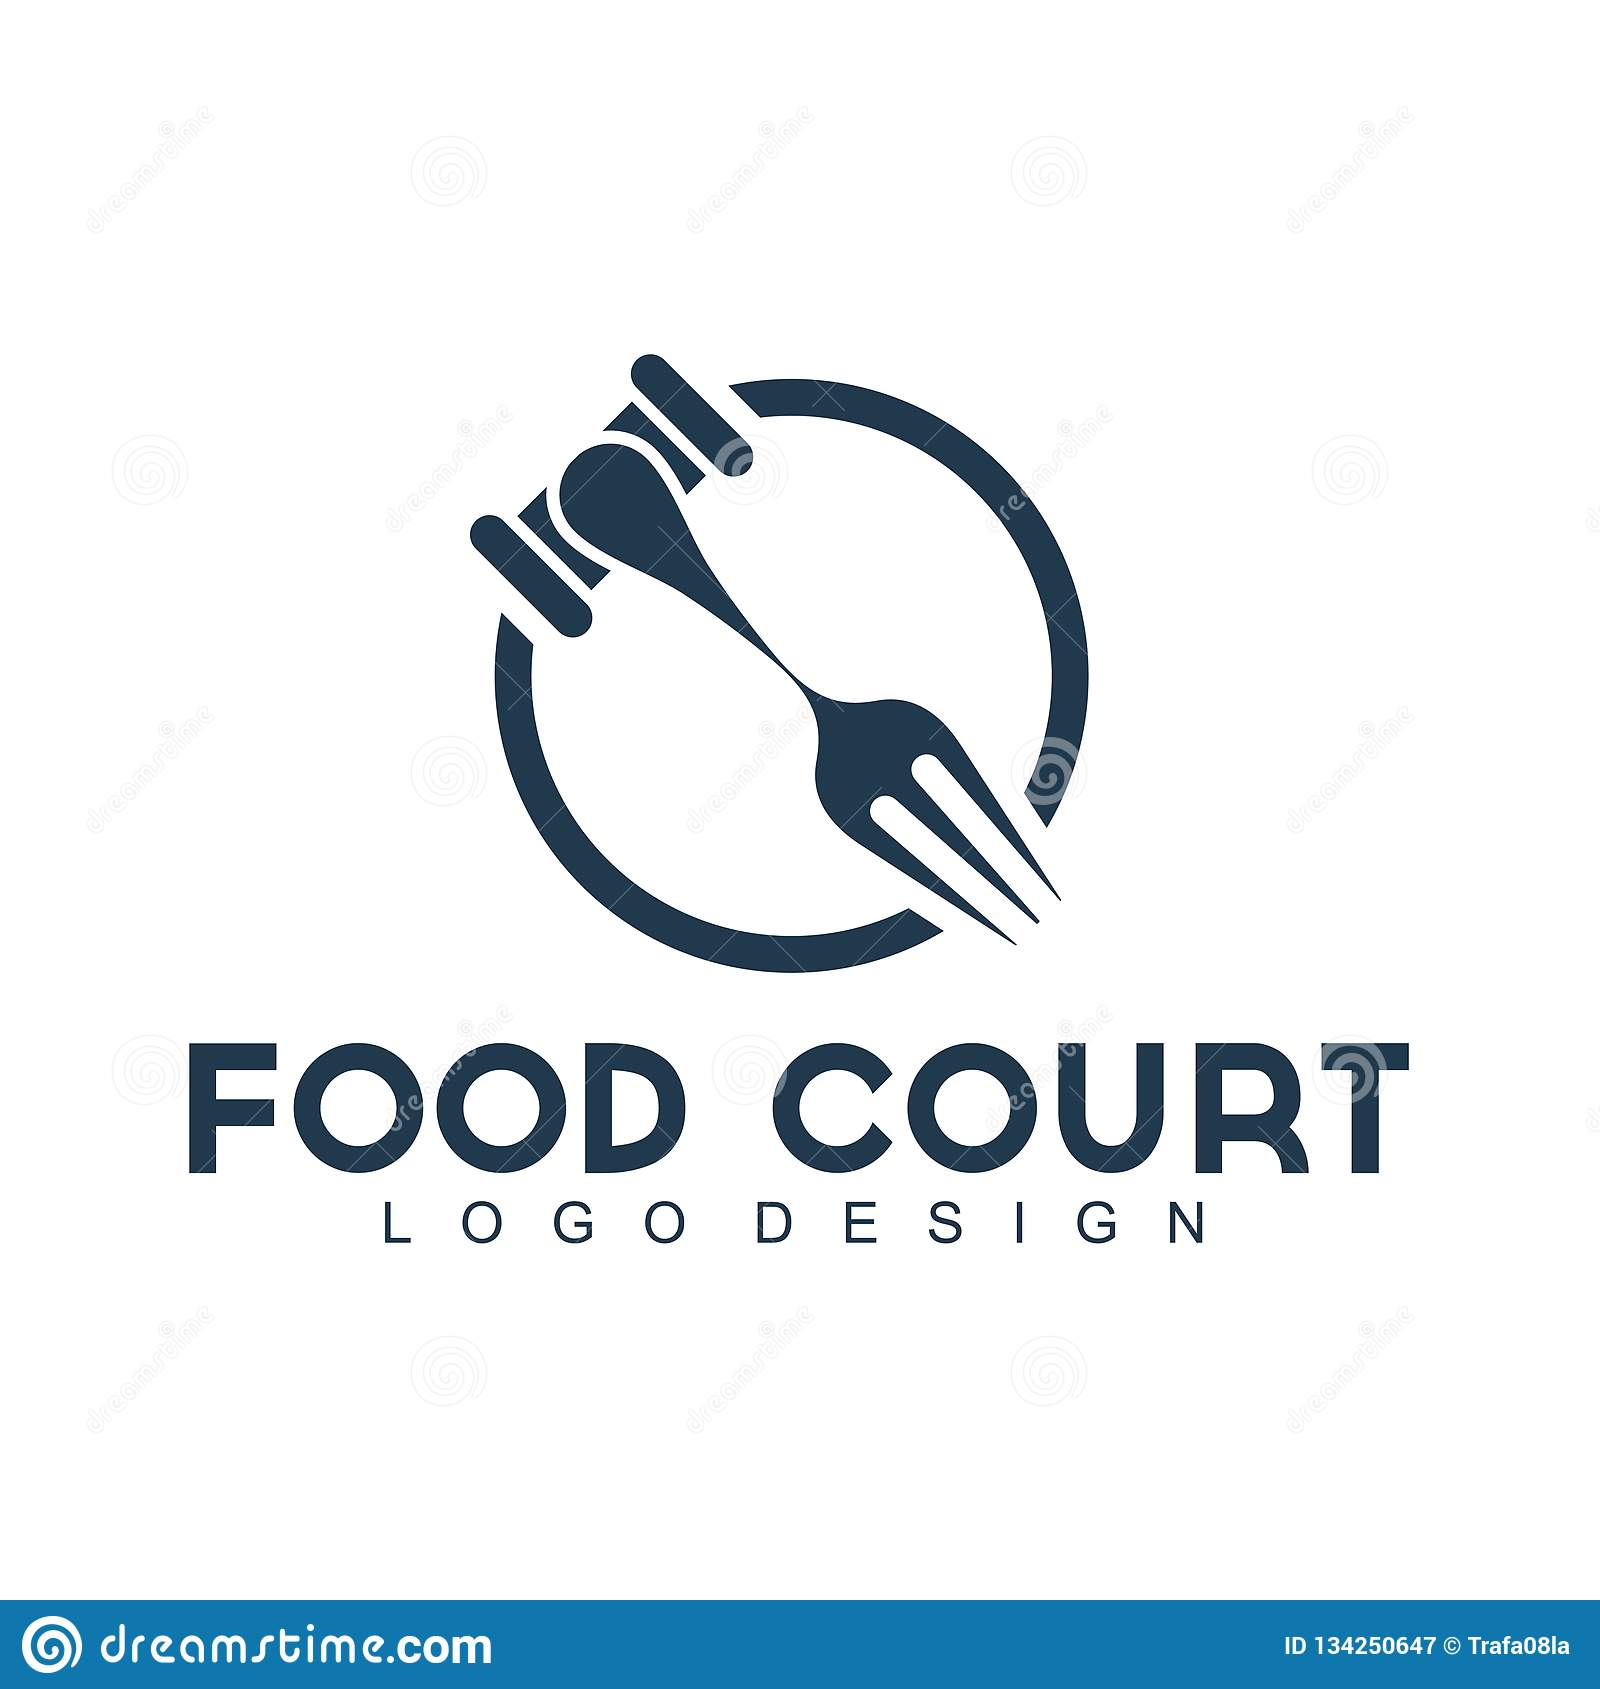 Vintage Restaurant Logo Design Inspiration Vector Illustration Stock Illustration Illustration Of Decoration Graphic 134250647